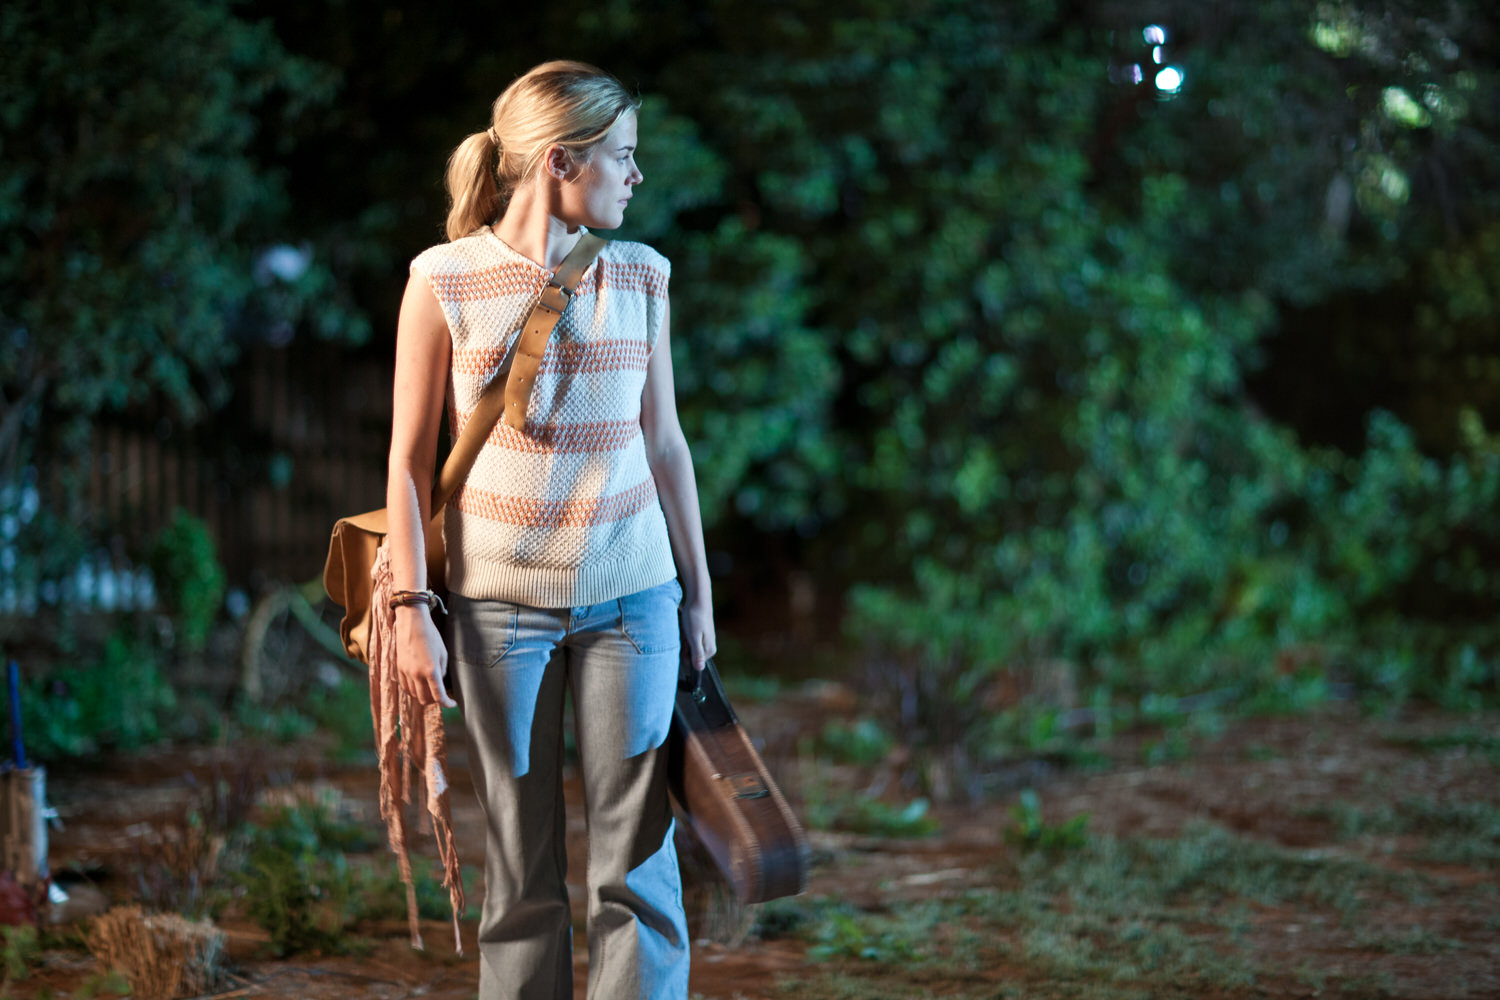 An action based    night scene    of actor    Rachael Taylor    made during the filming of    Summer Coda    in and around the rural city of Mildura in Australia.